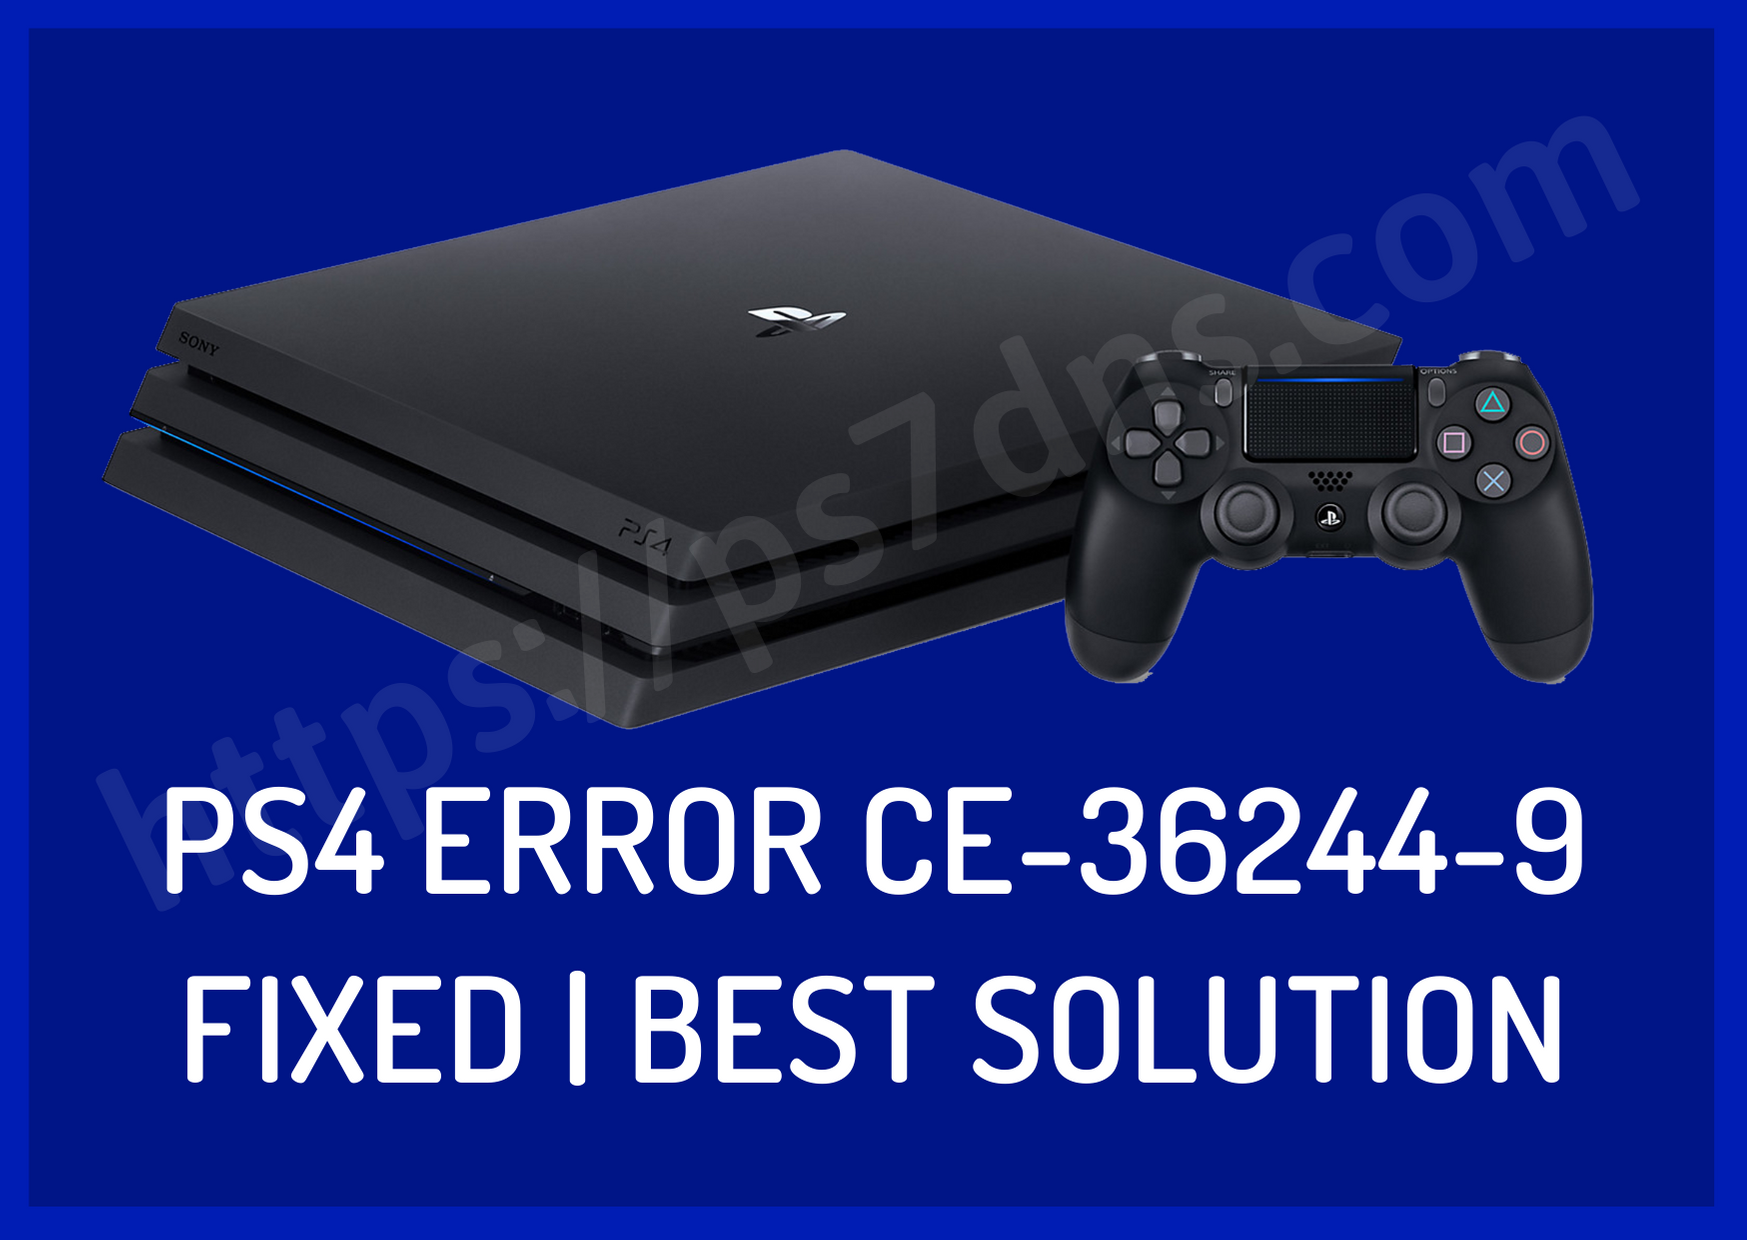 PS4 Error CE-36244-9 Fixed | Best Solution